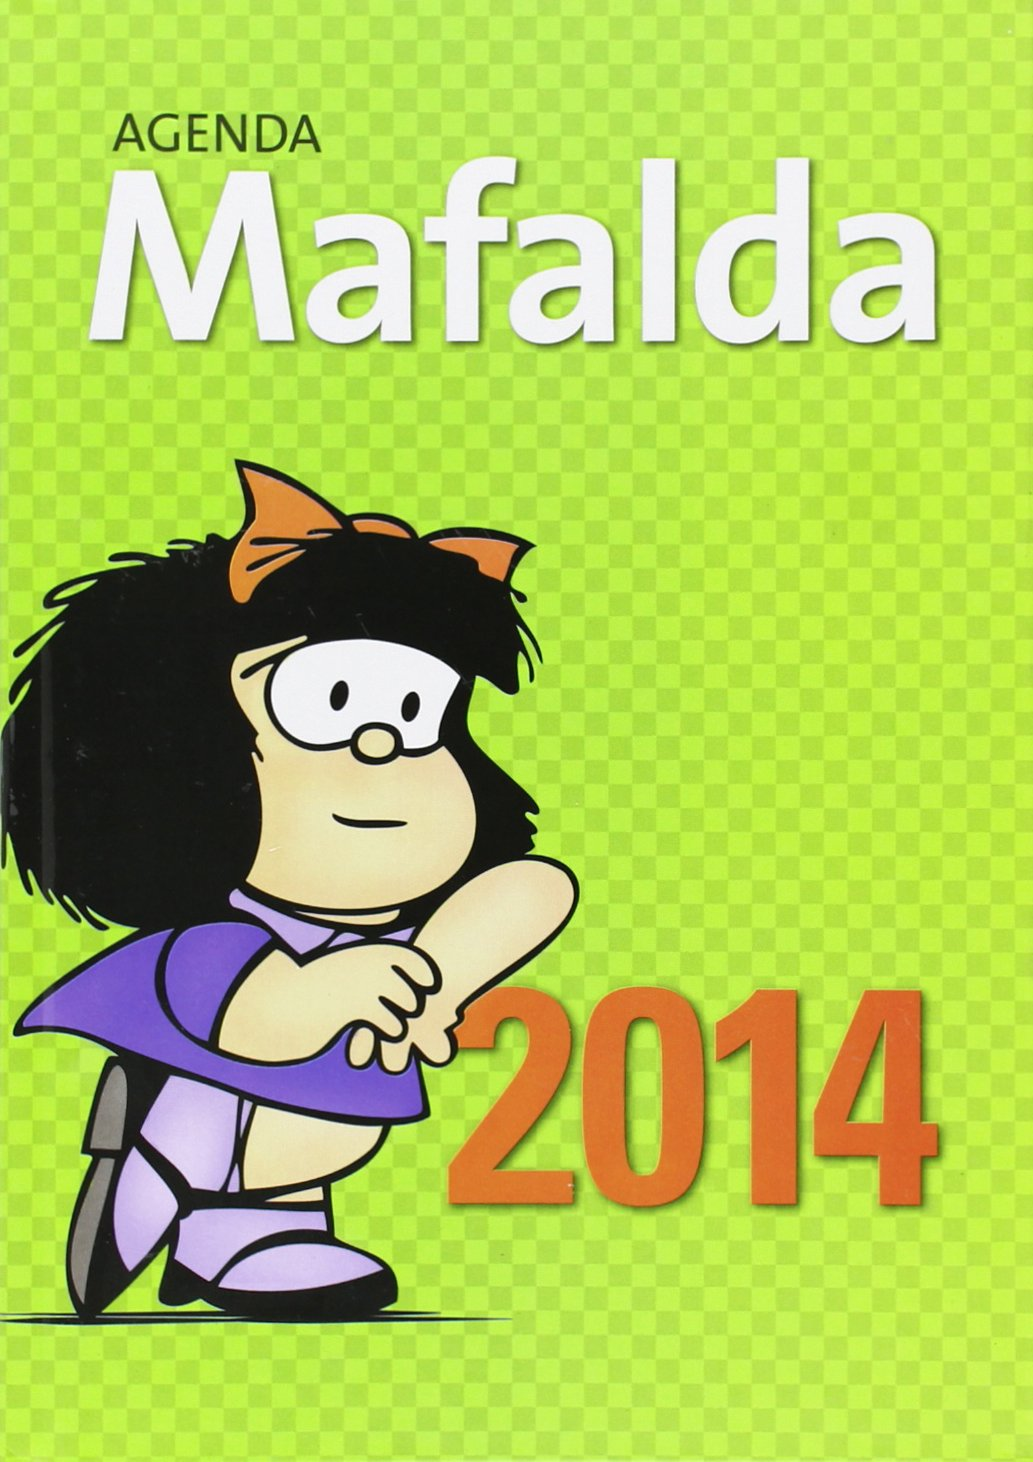 AGENDA MAFALDA 2014 [Spanish]: QUINO: 9789871255498: Amazon ...